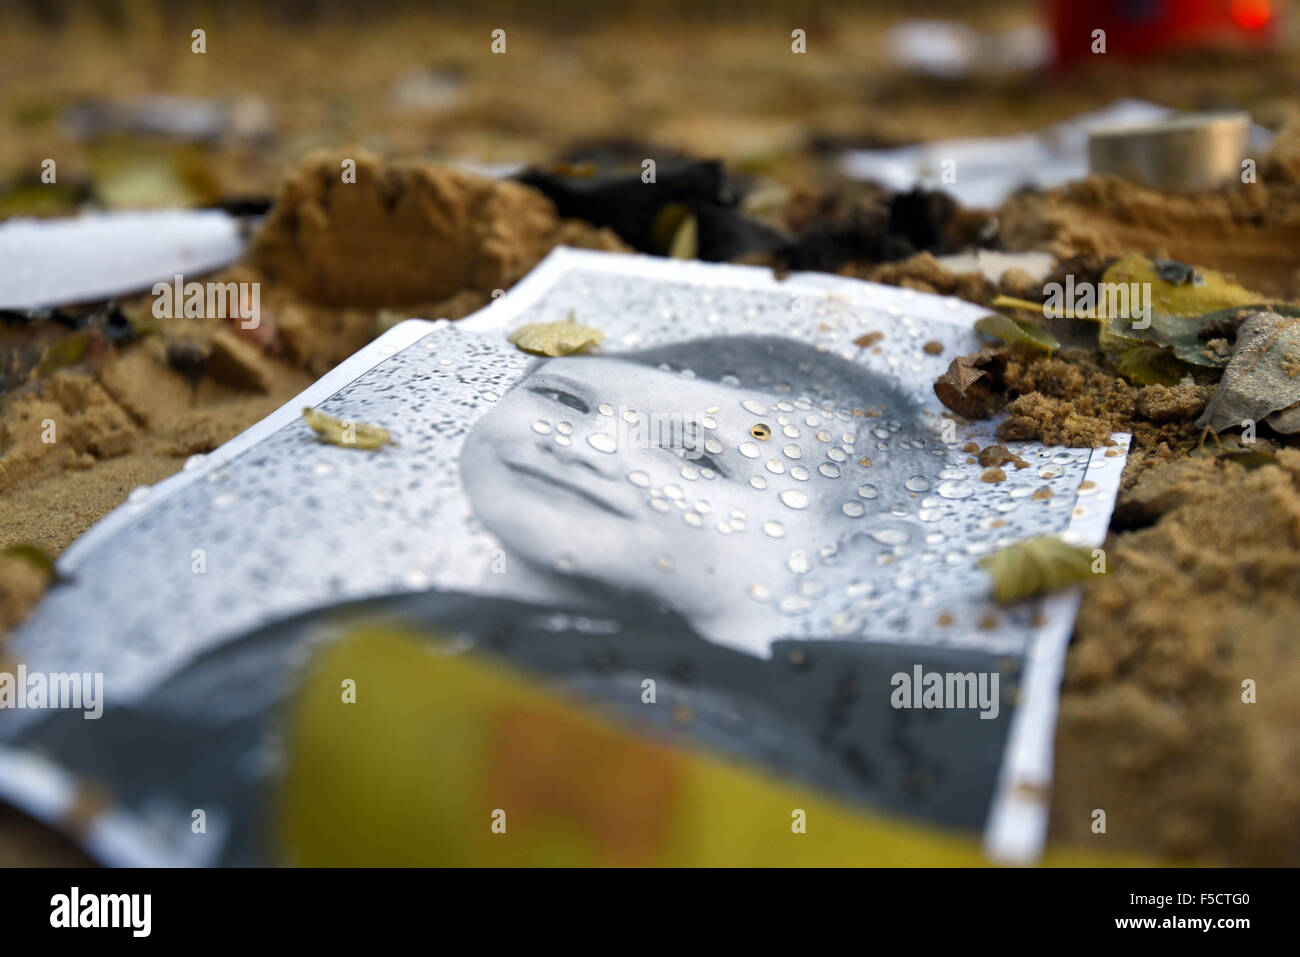 Potsdam, Germany. 02nd Nov, 2015. Pictures of Elias, deceased, have been placed in a sandbox at the 'Am Schlaatz' - Stock Image